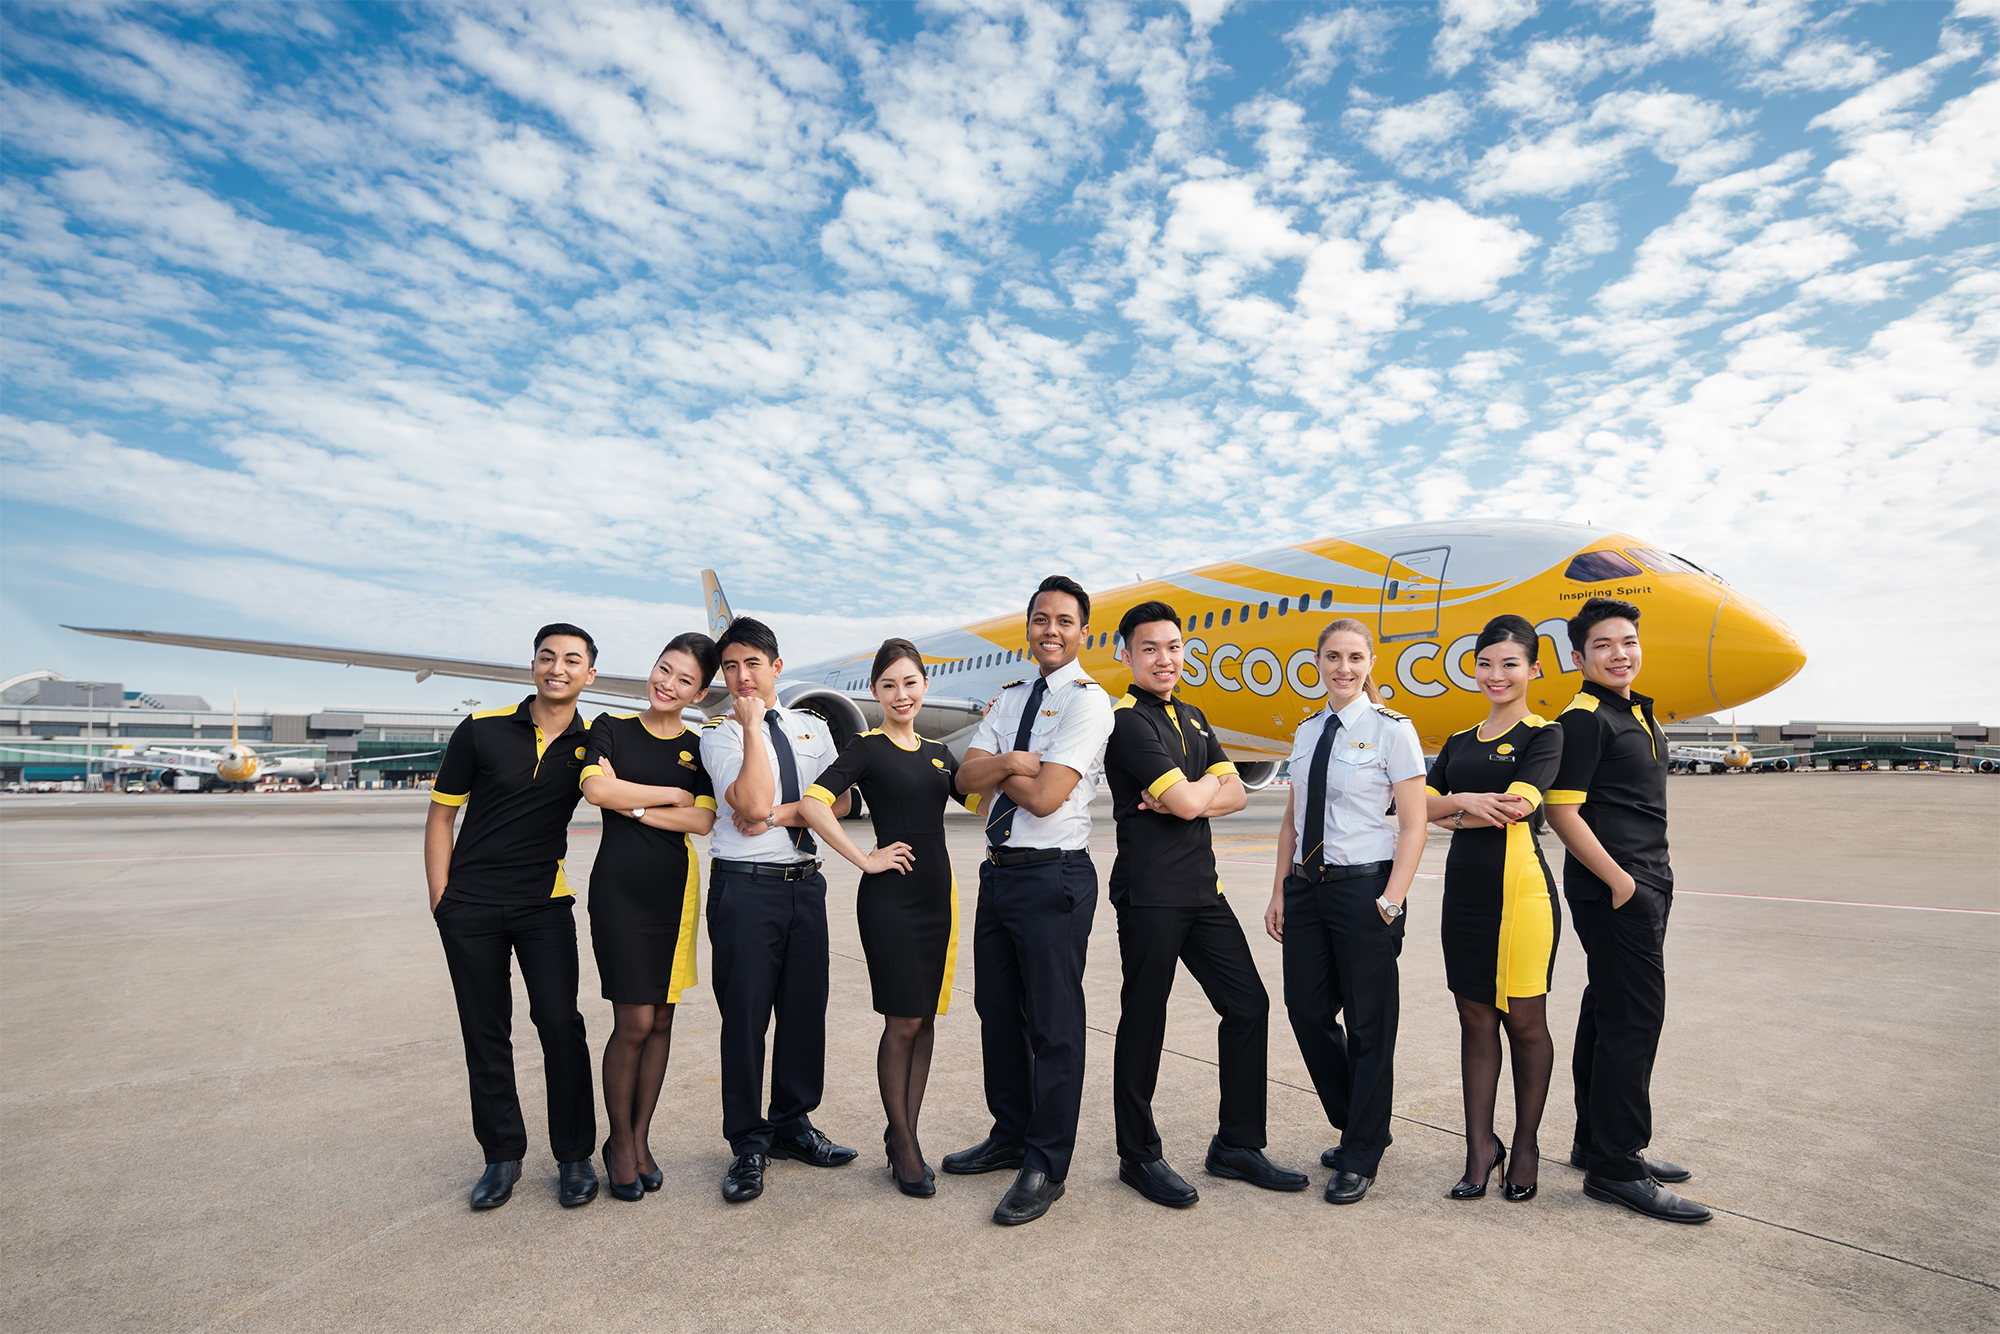 Scoot Crew Outside 787 (Scoot)